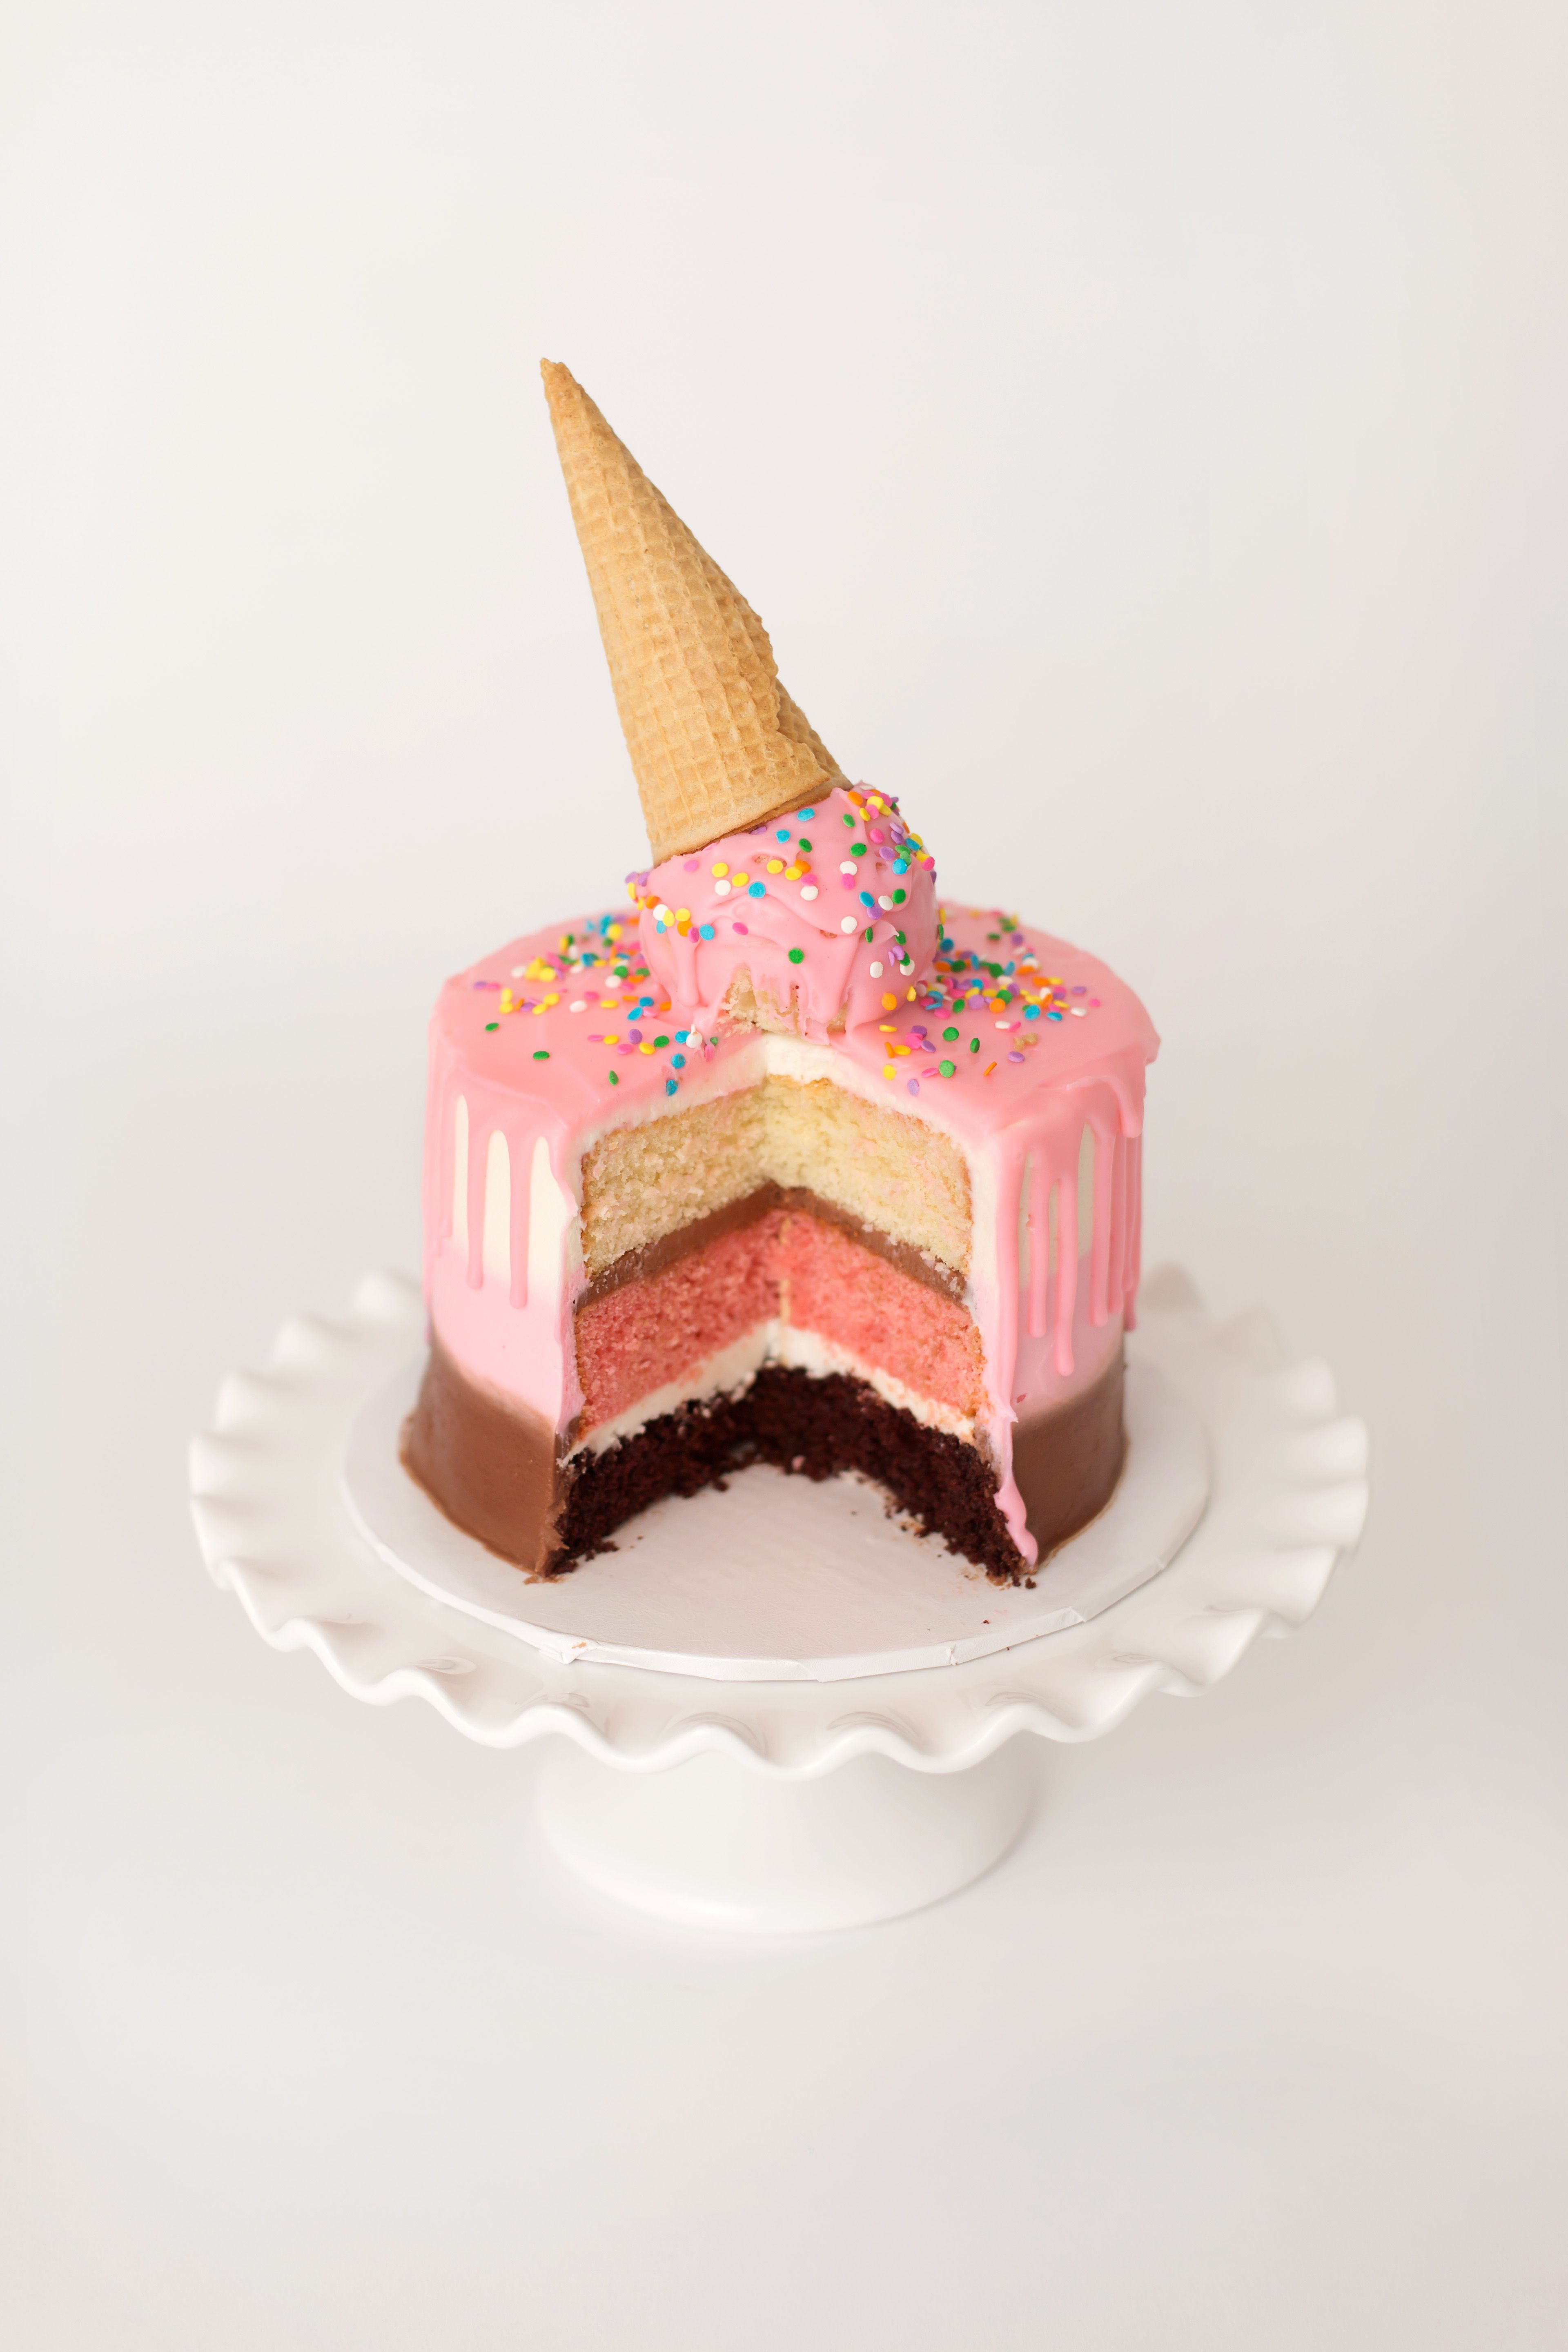 Home (With images) Ice cream cone cake, Ice cream party